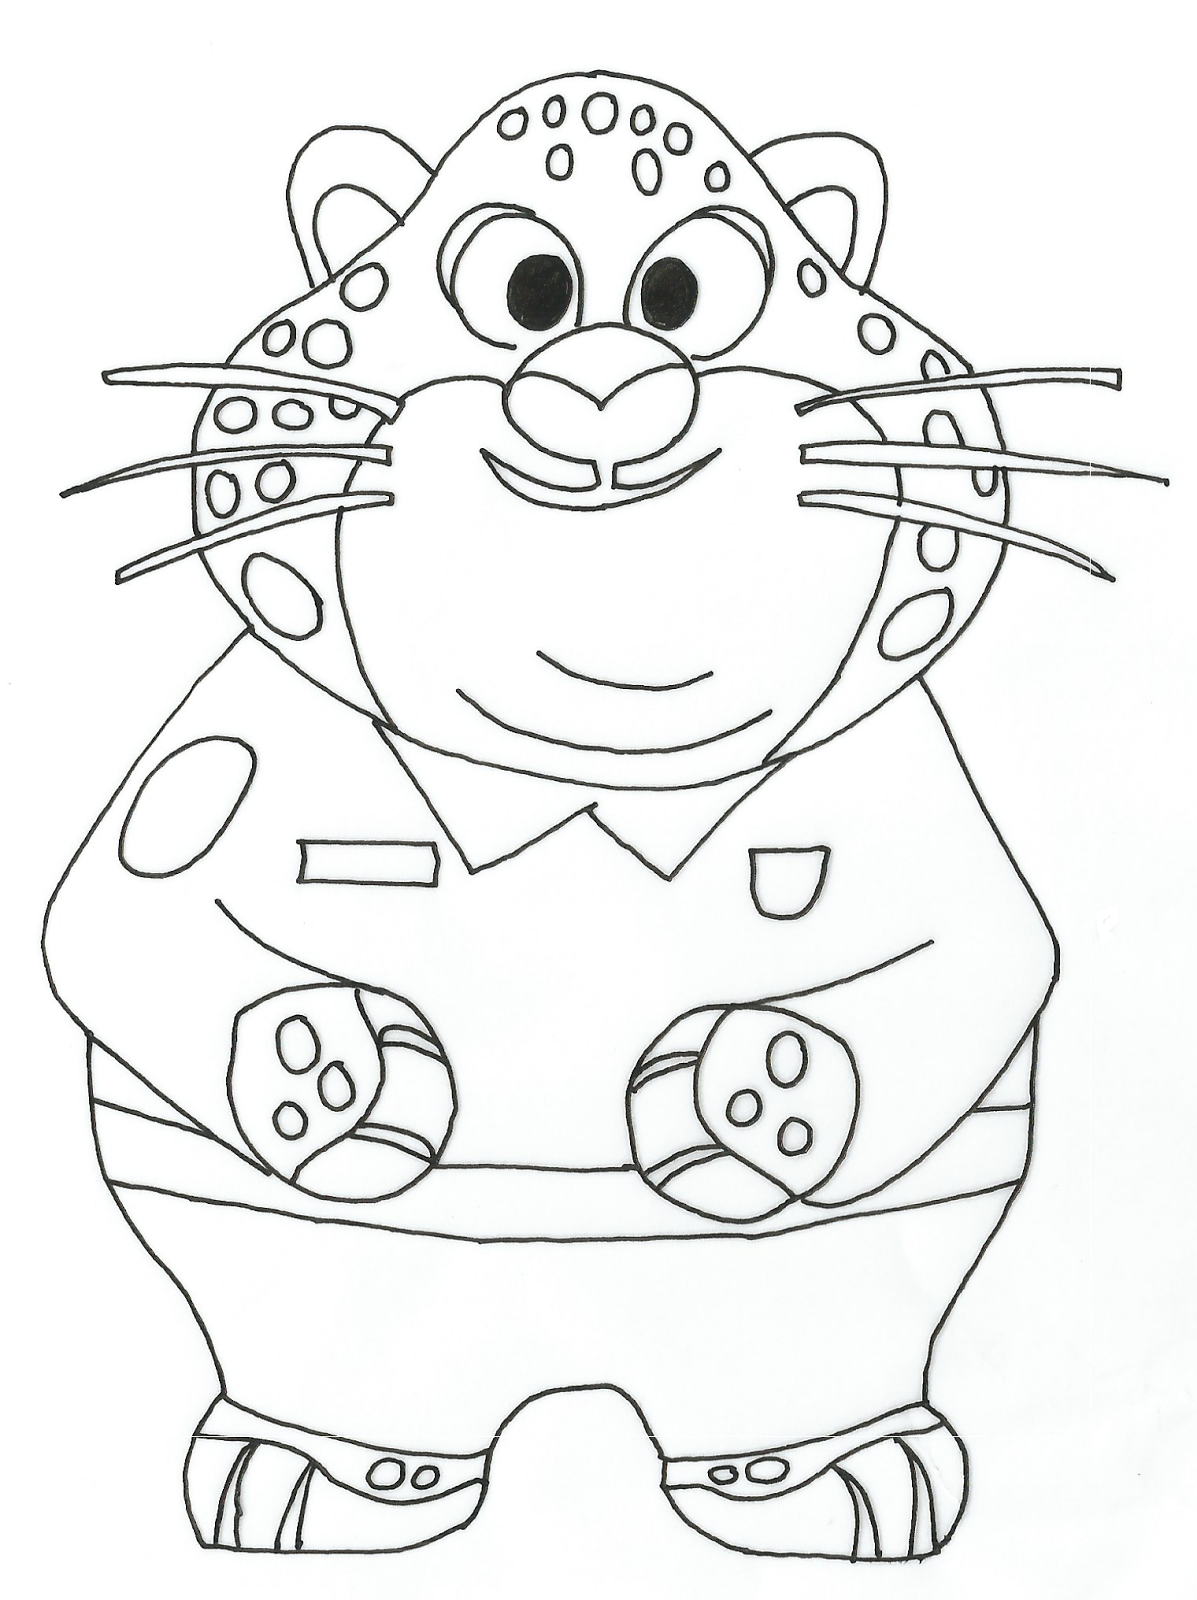 Zootopia Free Printable Coloring Pages